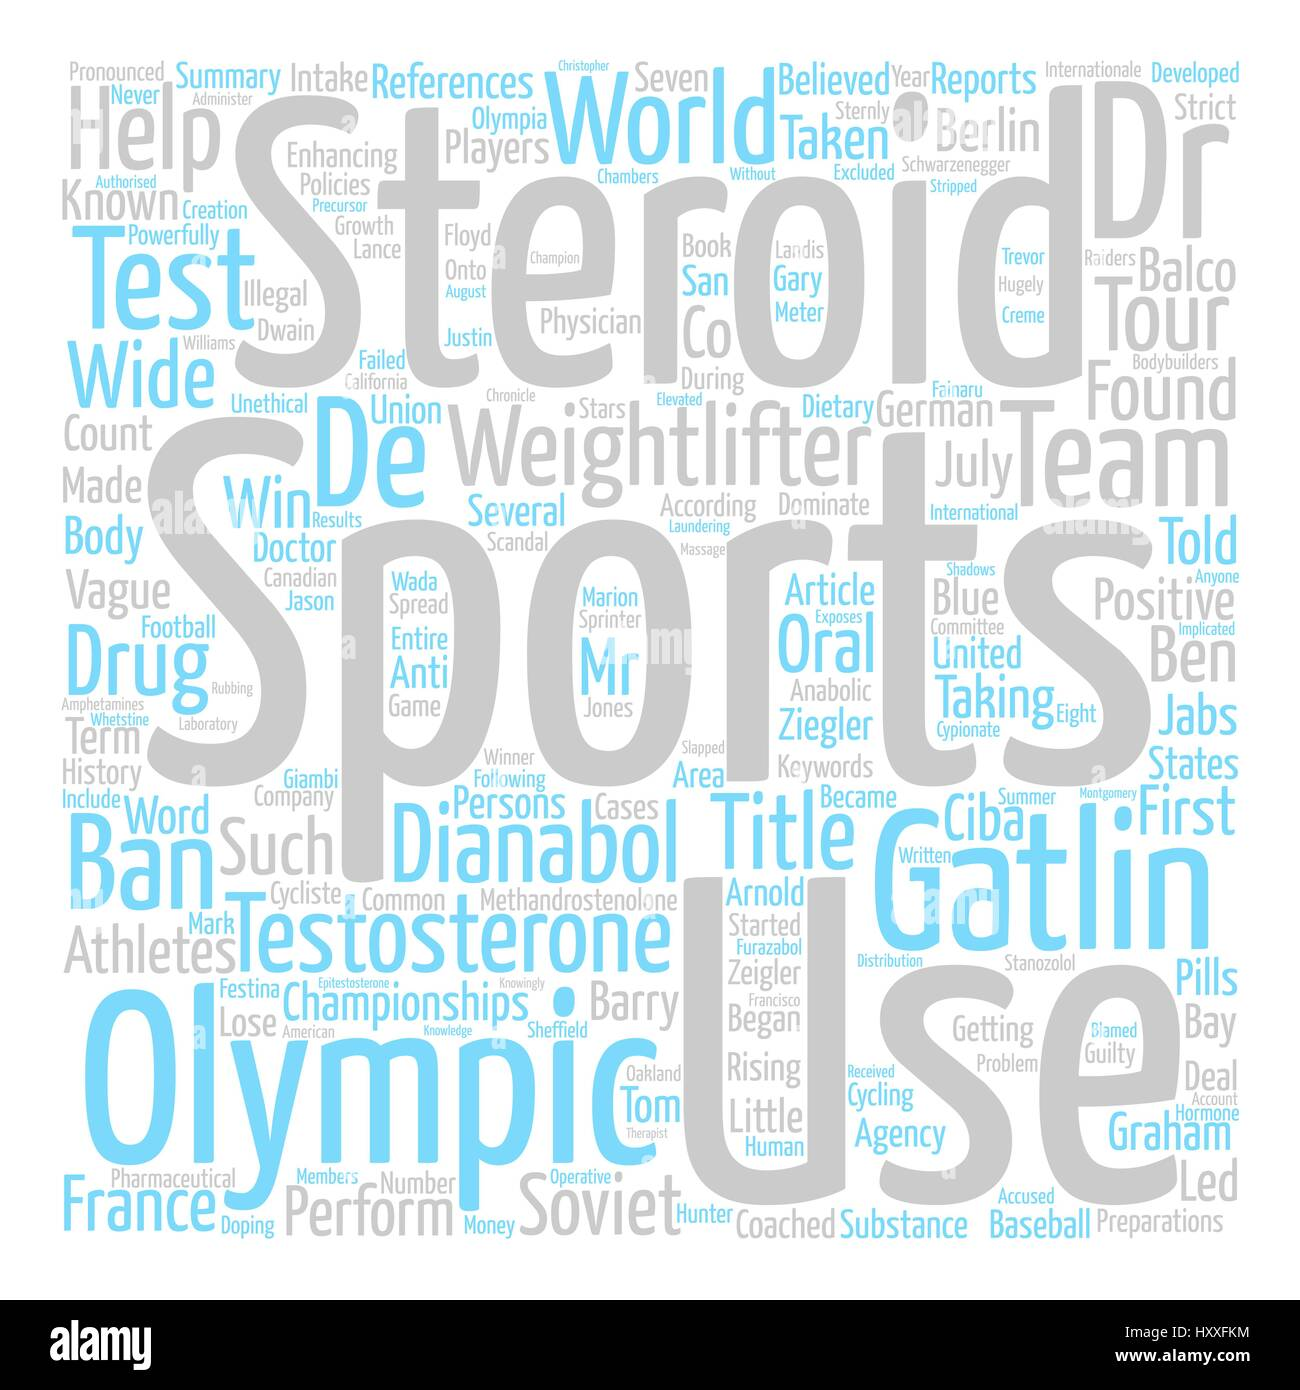 Steroid Use in Sports text background word cloud concept - Stock Vector